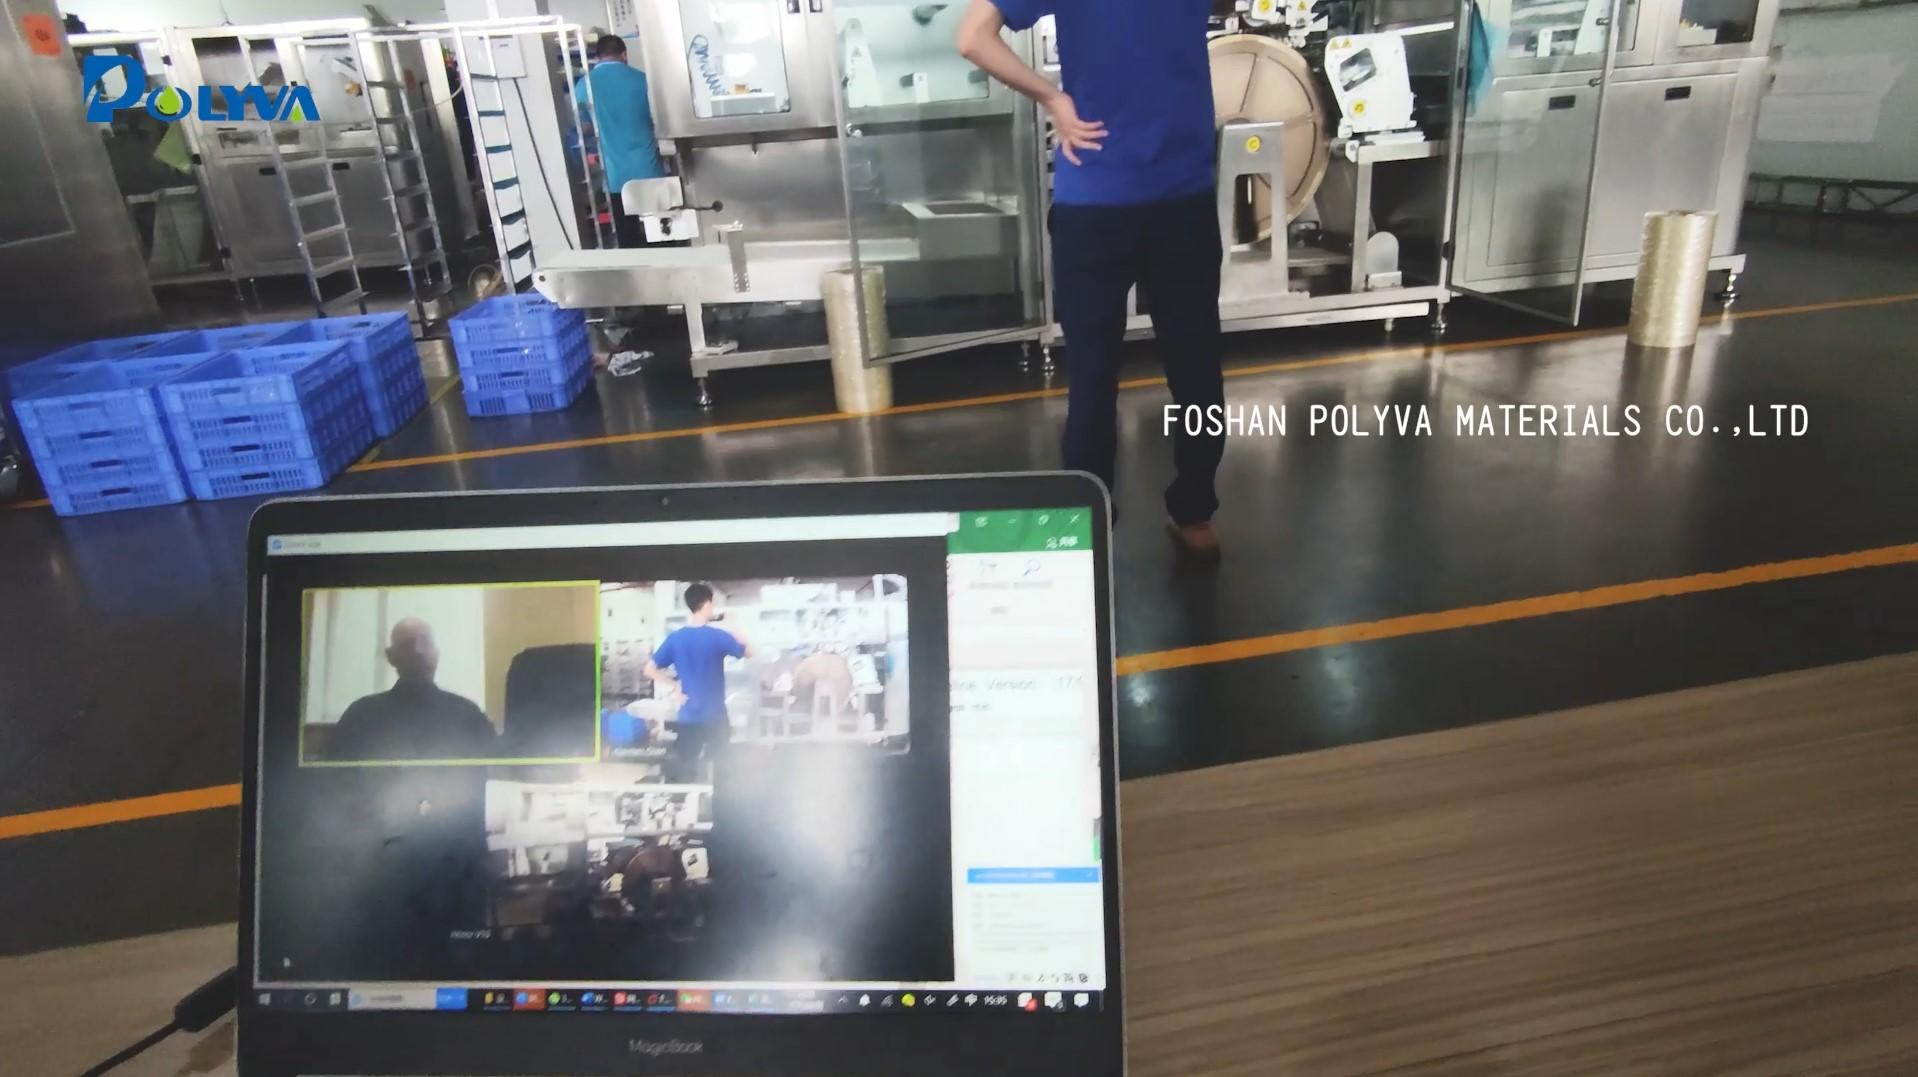 Polyva's foreign customers inspection and acceptance of the laundry detergent pods packaging machine by the live broadcast.